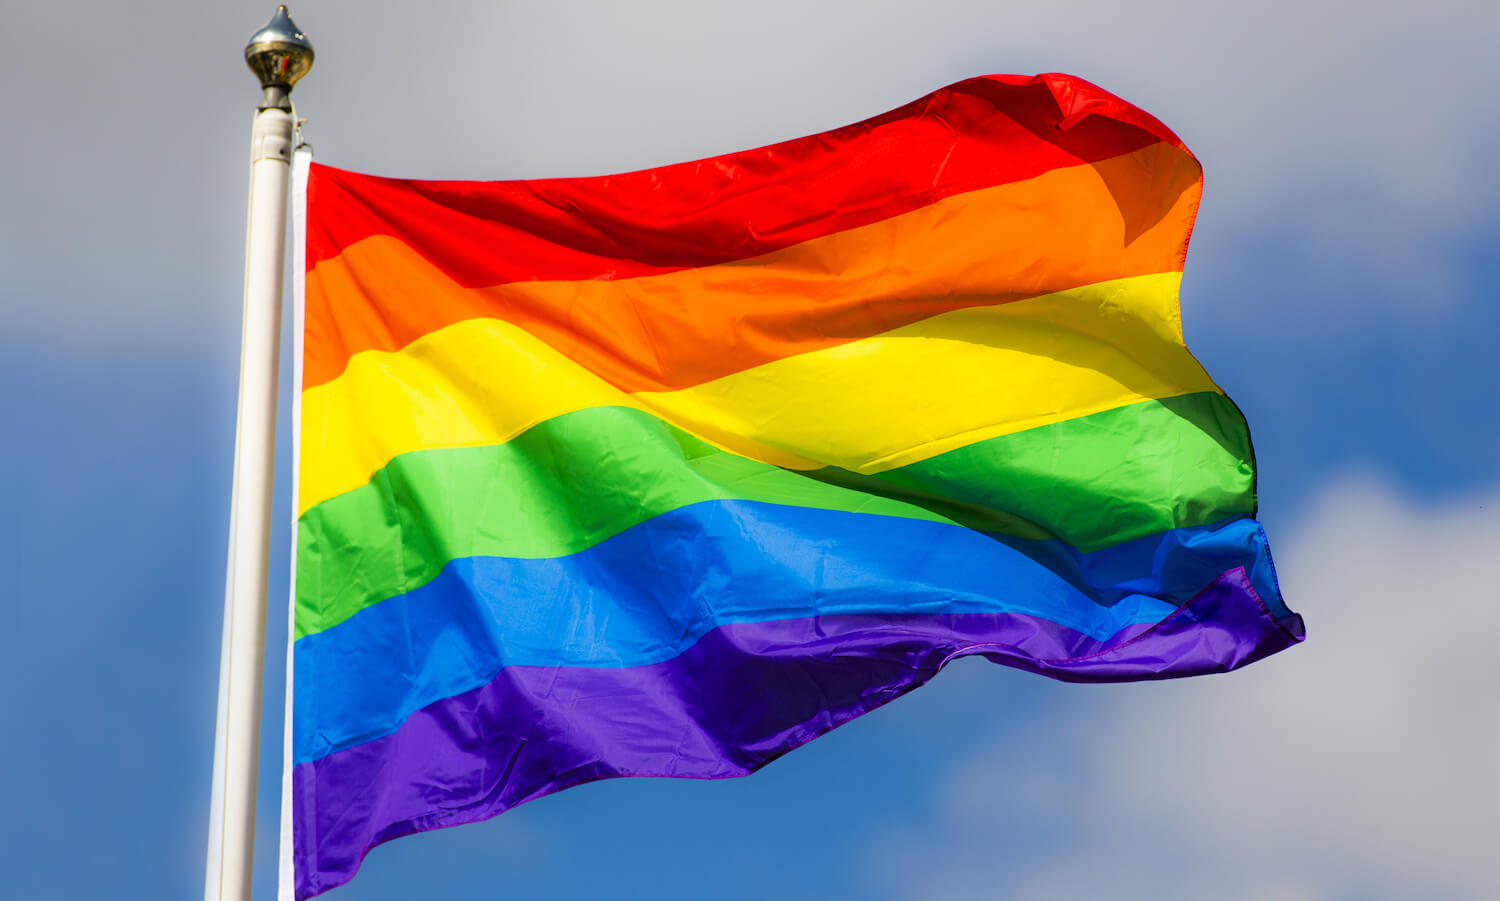 Rainbow flag waving in wind